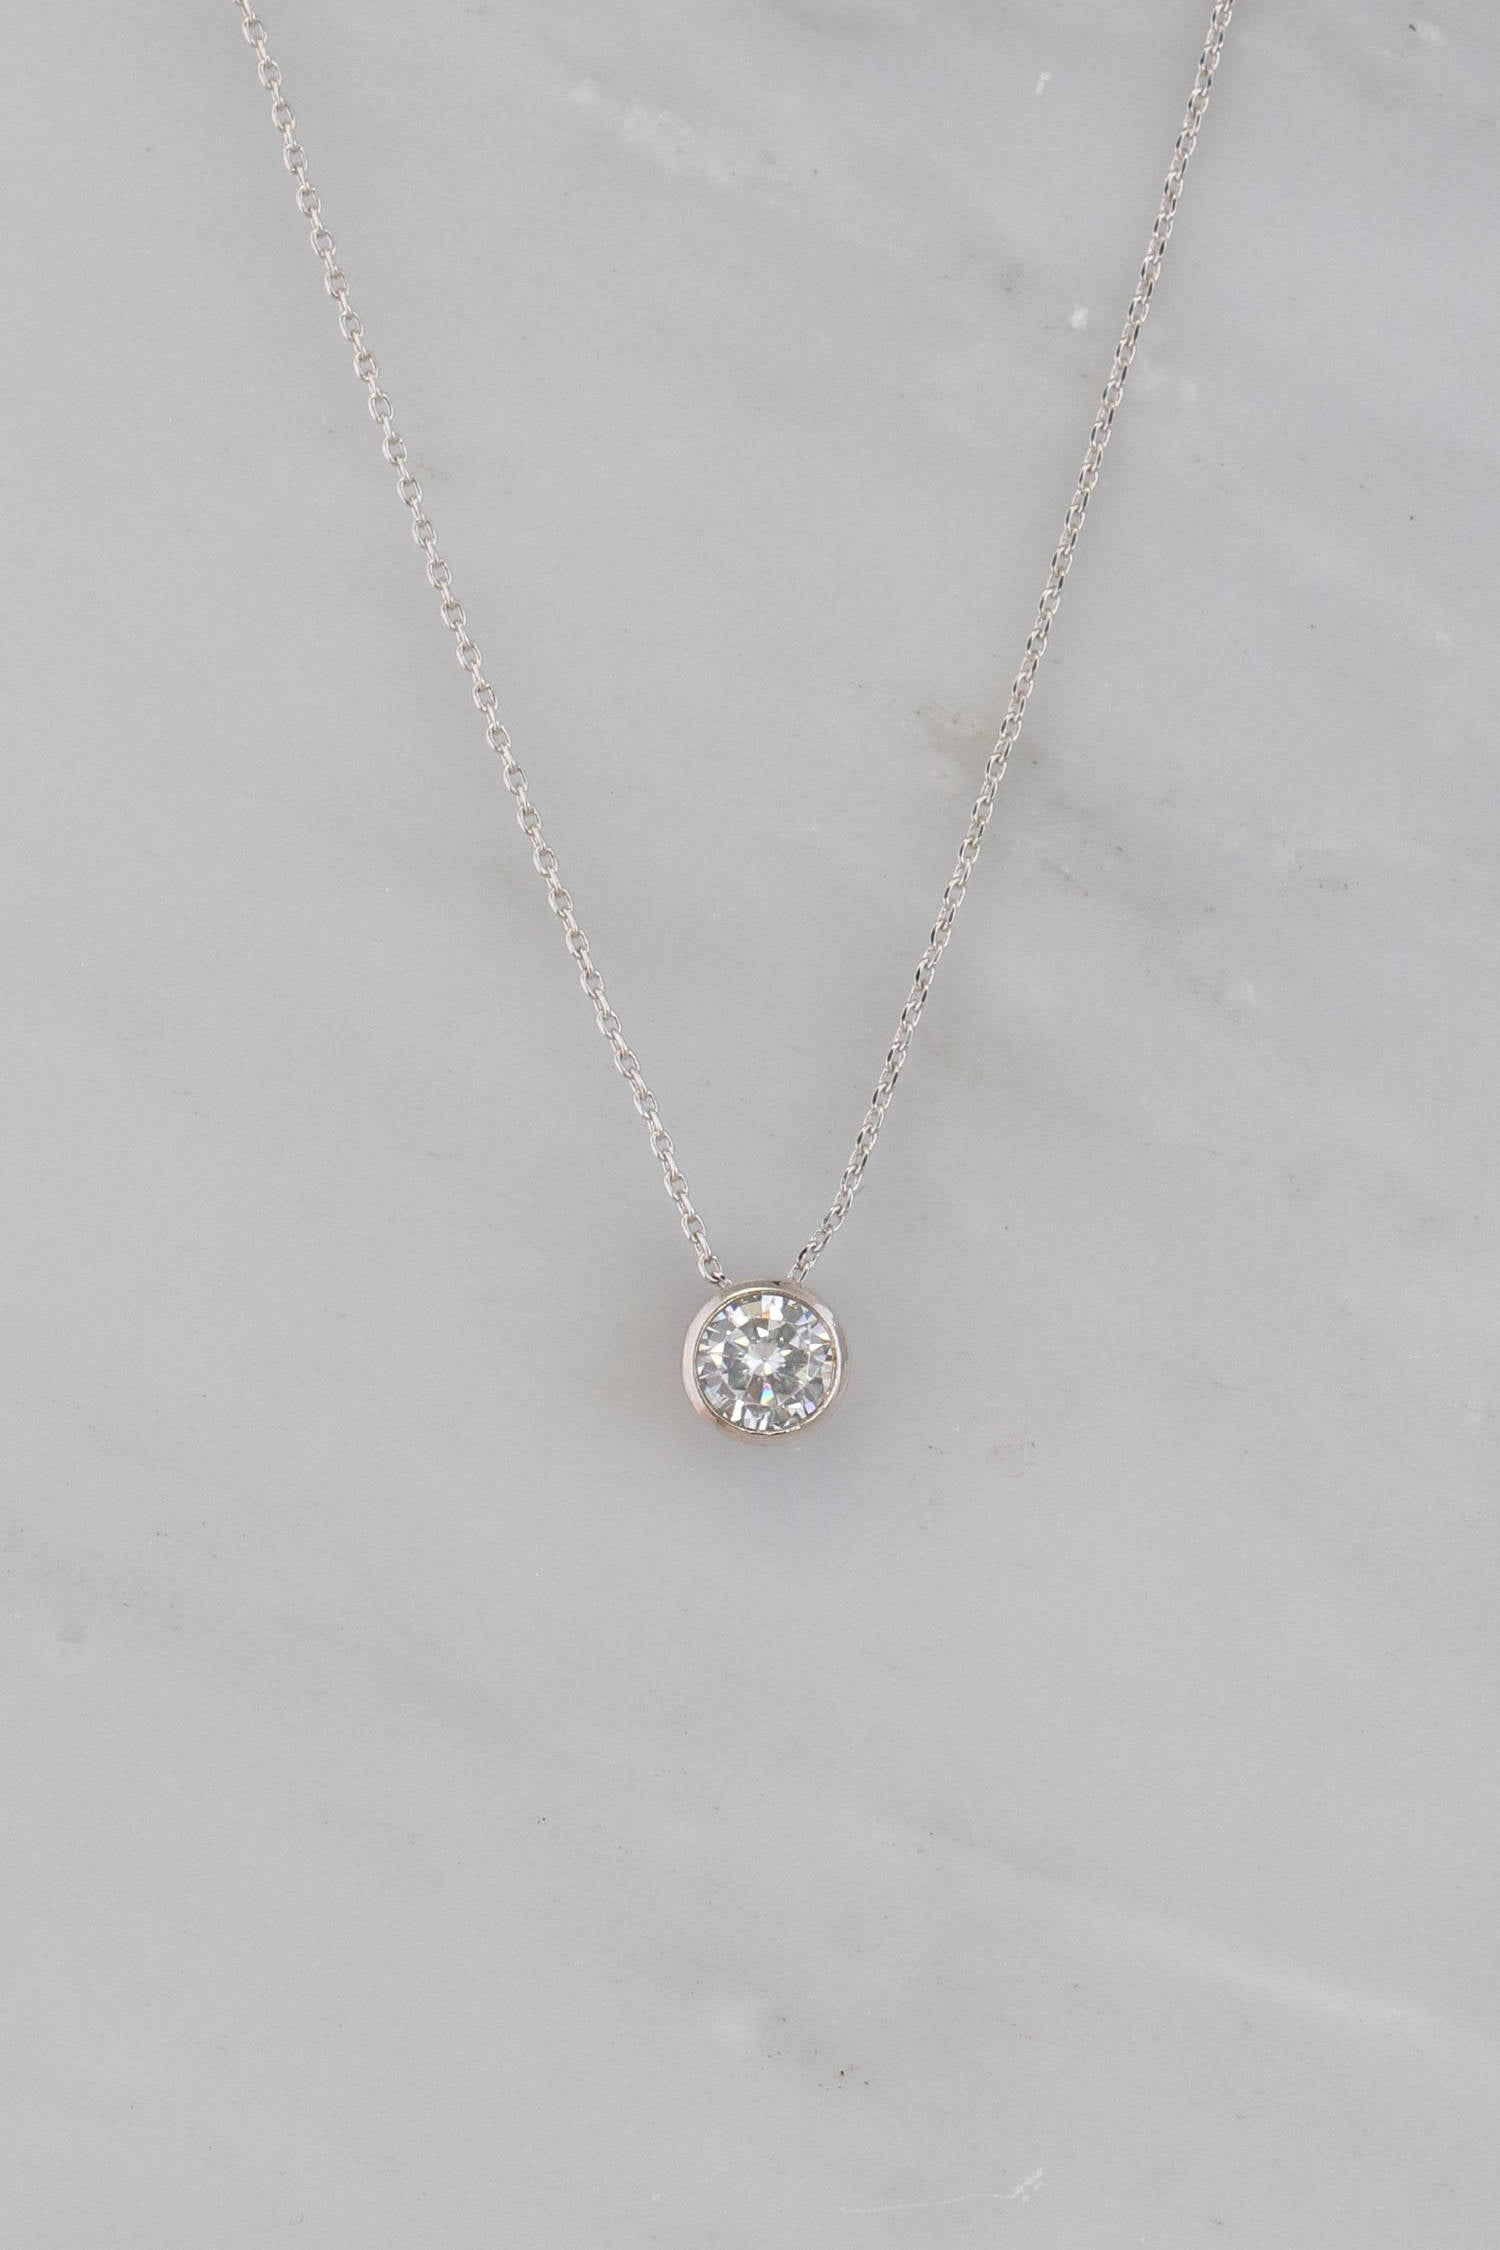 Solitaire Diamond Necklace - Dainty Solitaire - Delicate Solitaire - Floating Diamond - Silver Chain - CZ Solitaire Necklace - Round diamond